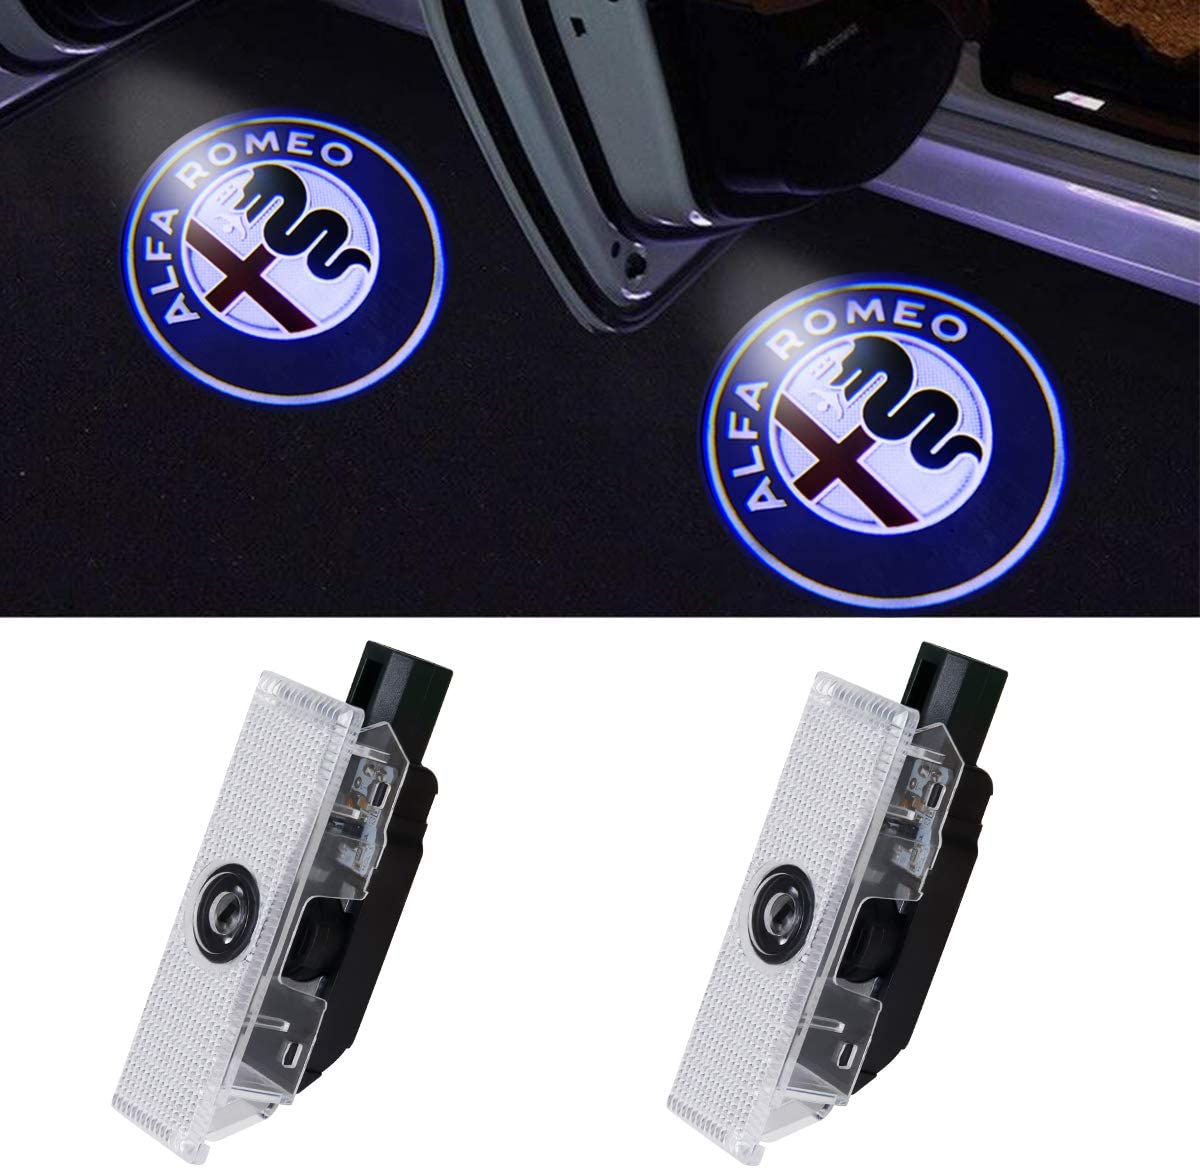 KRADA Car Door Logo Light LED Projector Ghost Shadow Welcome Lights for Alfa Romeo Giulietta/Mito/Stelvio/Giul Series Symbol Emblem Courtesy Step Lights Kit Replacement (2 Pack)